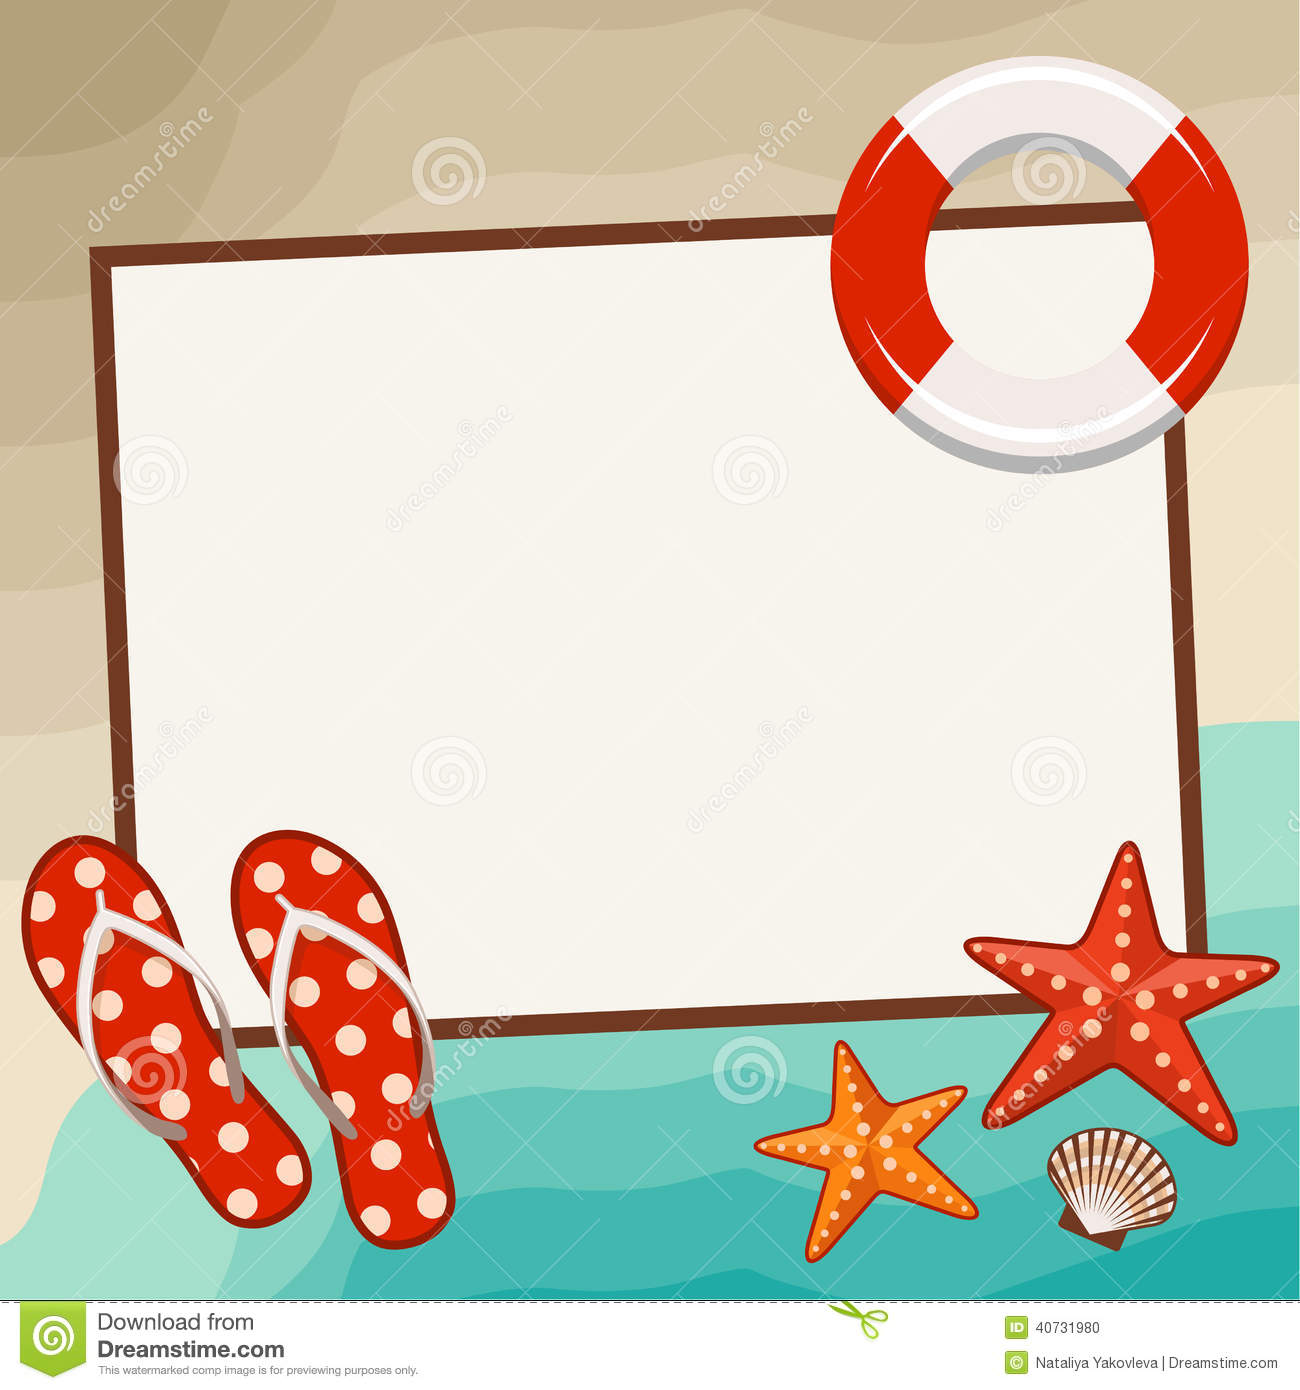 Summer Frame With Beach Symbols. Stock Vector - Illustration of ...